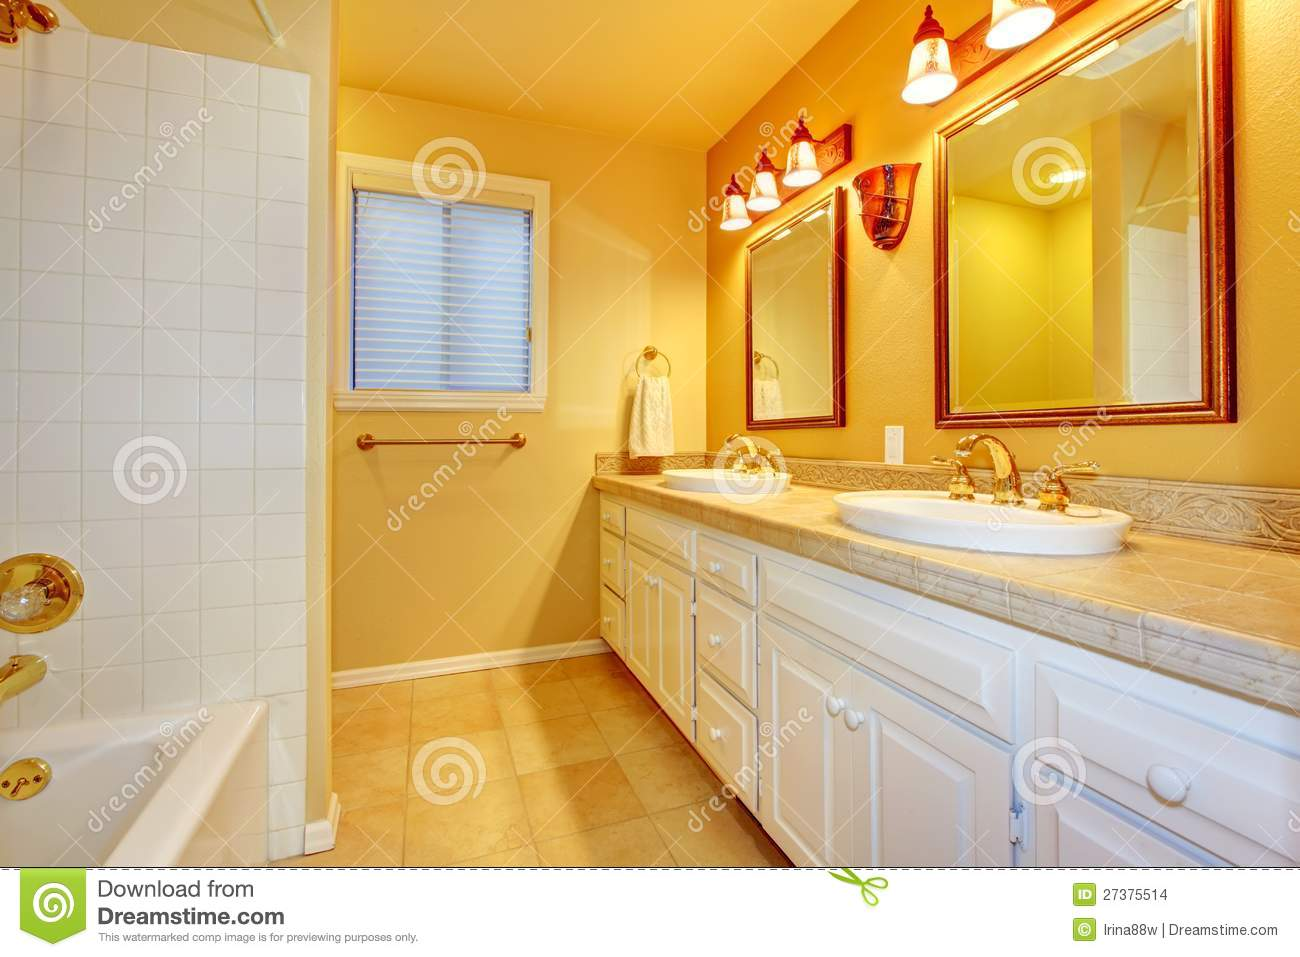 Charmant Bathroom With White Cabinets And Gold Walls. Bathtub, Shower.